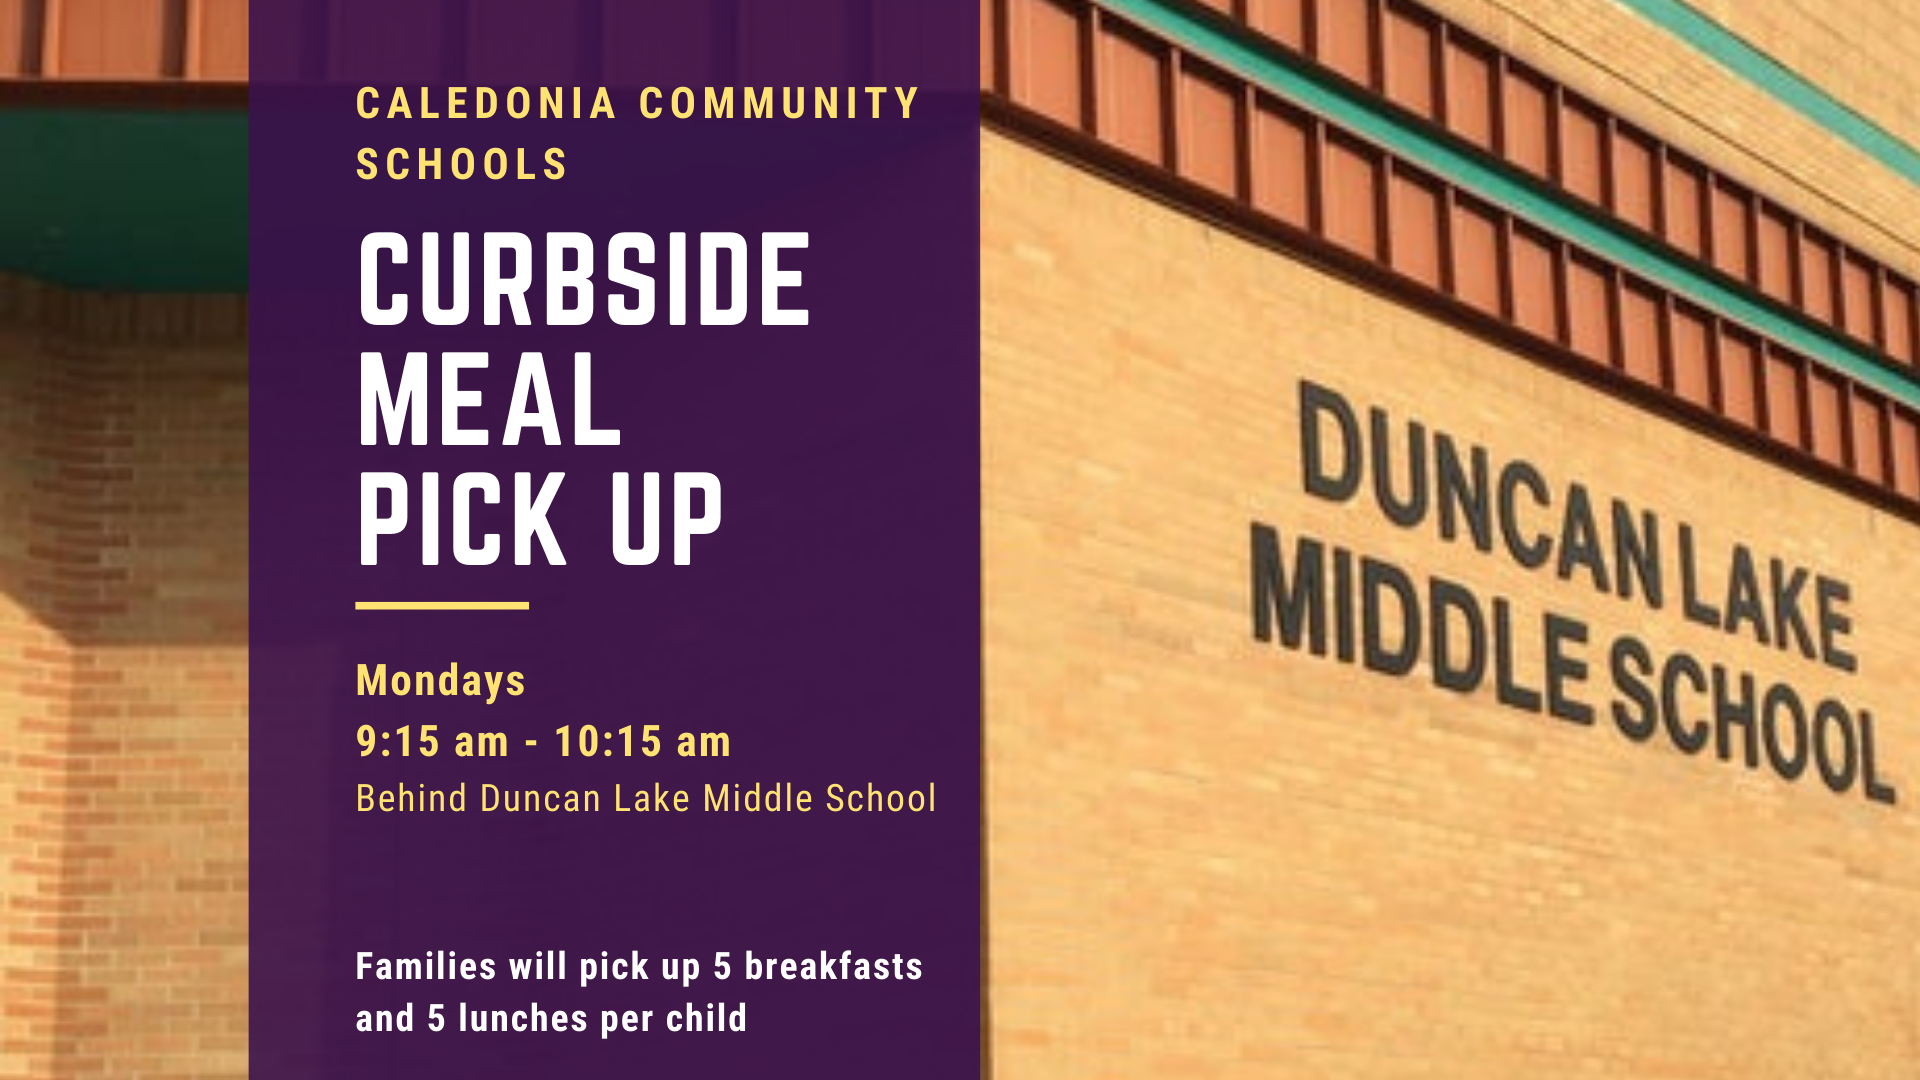 Curbside Meal Information